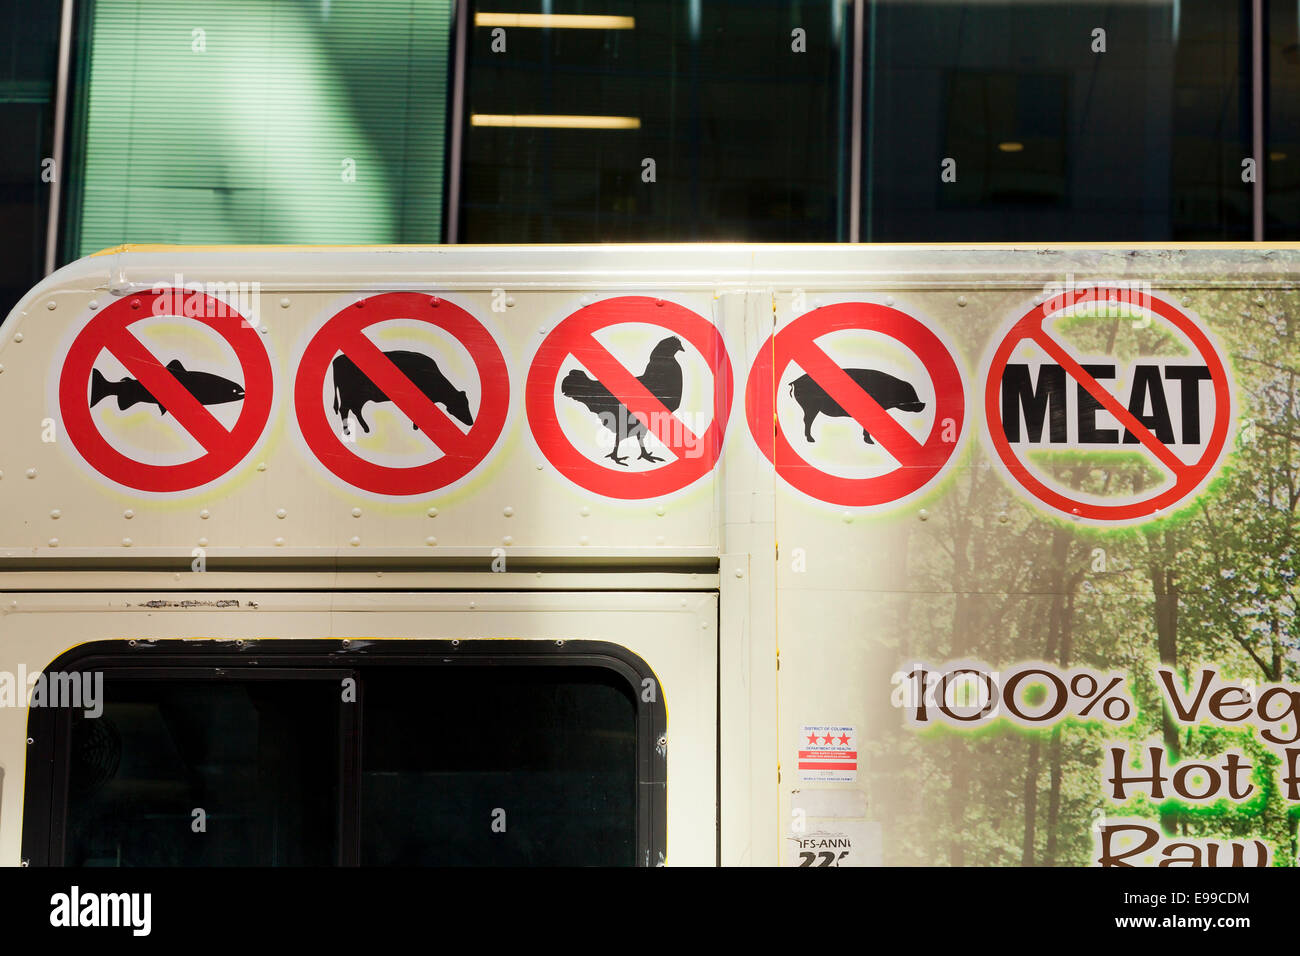 No meat signs on vegan food truck - Washington, DC USA Stock Photo